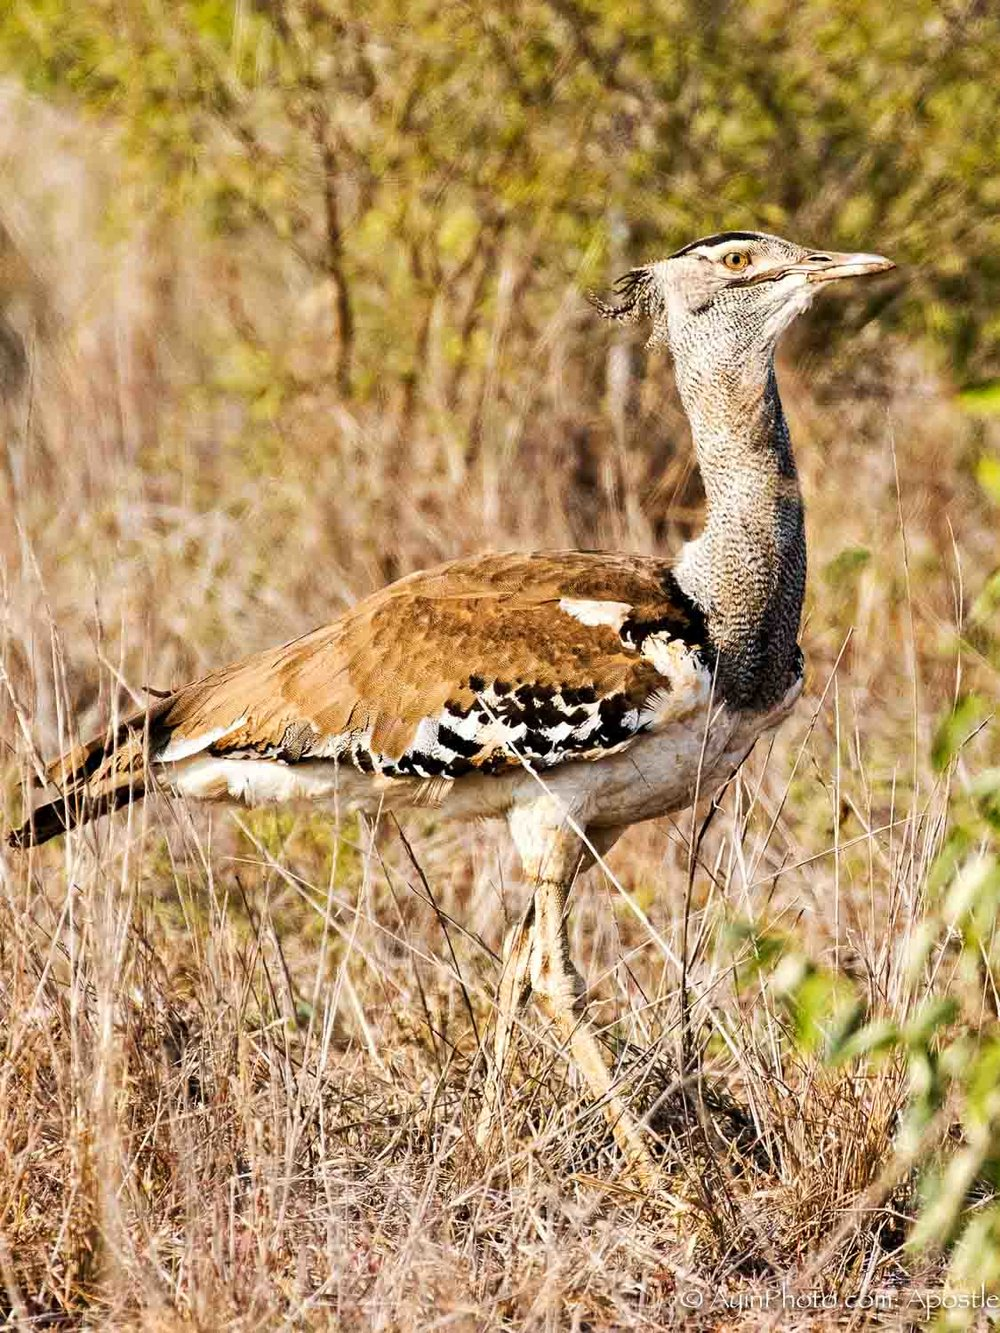 South Africa Korey Bustard 81A6171-.jpg